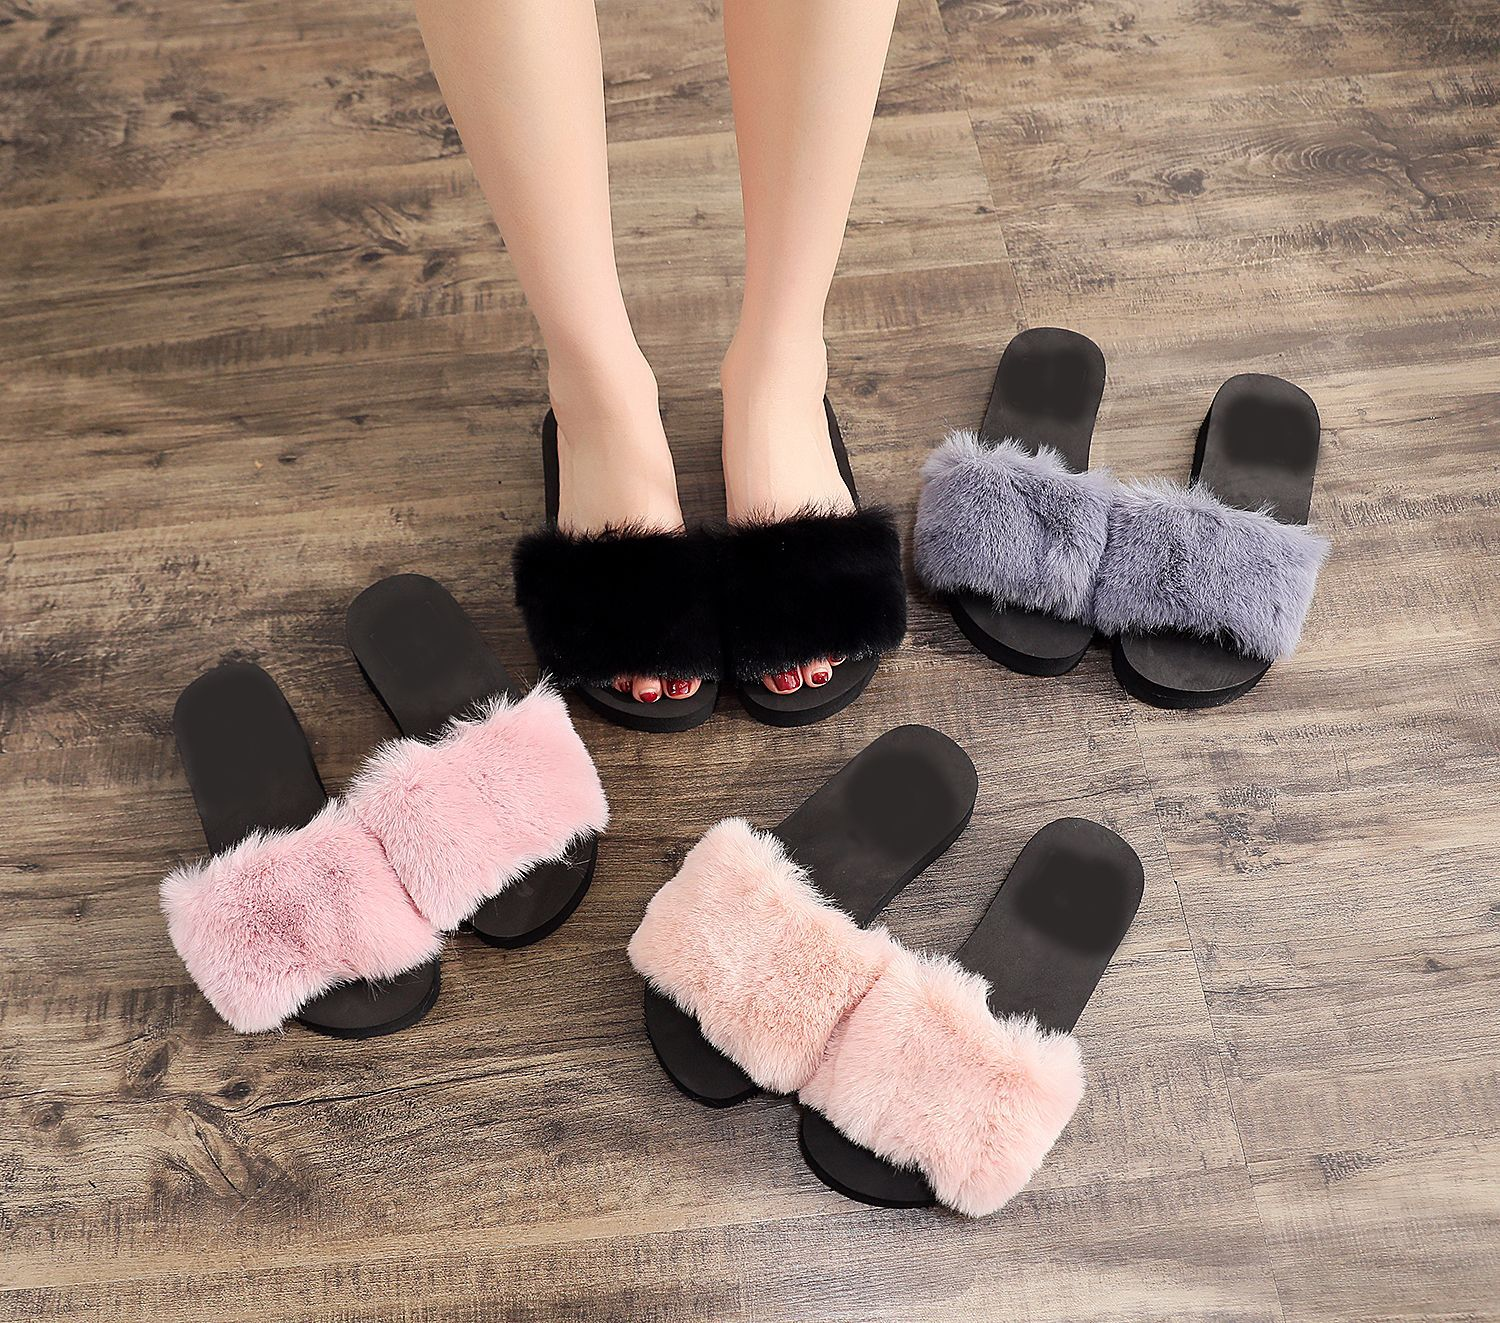 Maggie's Walker Chinese Slippers Fuzzy Slippers Chinelos Sliders Shoes New Women Spring Plush Slippers Fluffy Slipper Plus Size